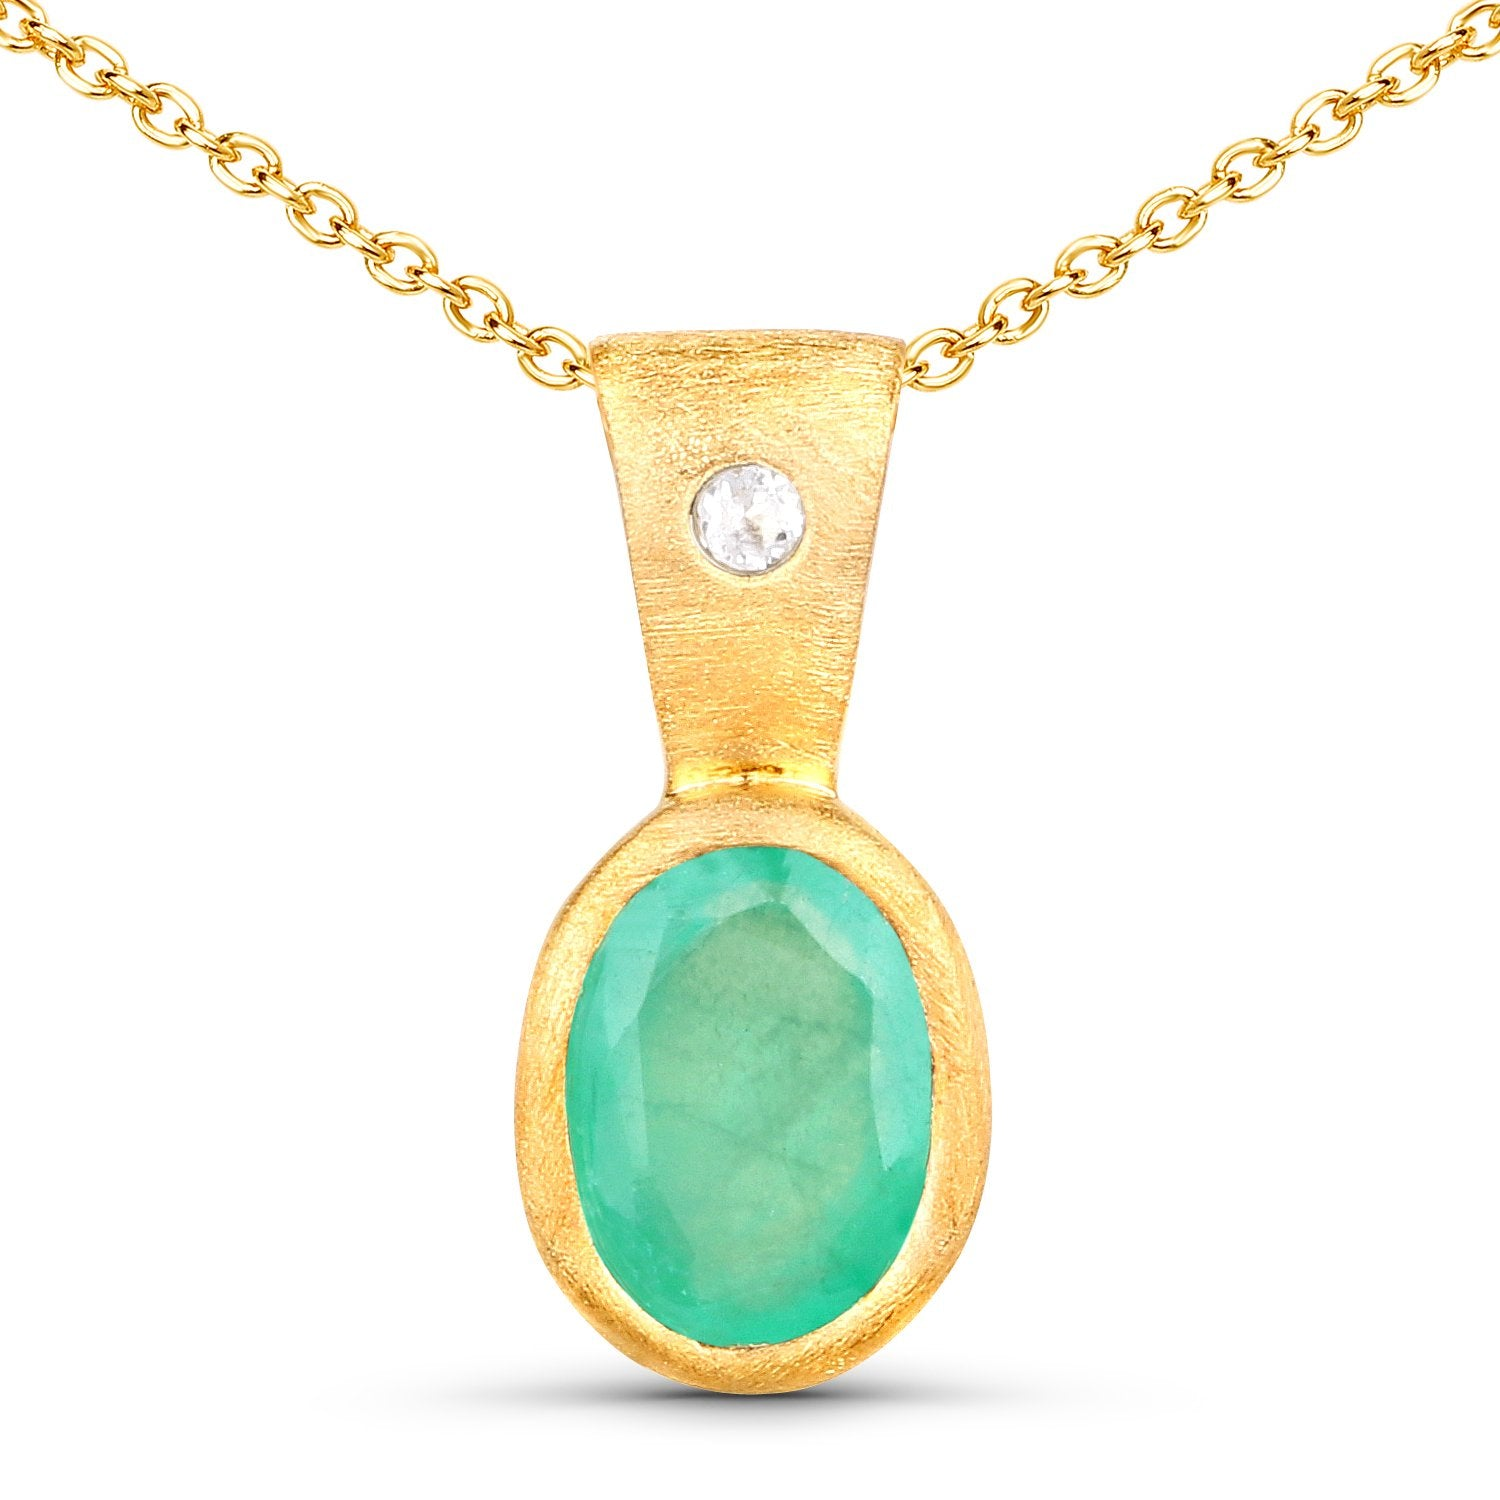 LoveHuang 0.60 Carats Genuine Sakota Emerald and White Topaz Pendant Solid .925 Sterling Silver With 18KT Yellow Gold Plating, Matte Finish, 18Inch Chain